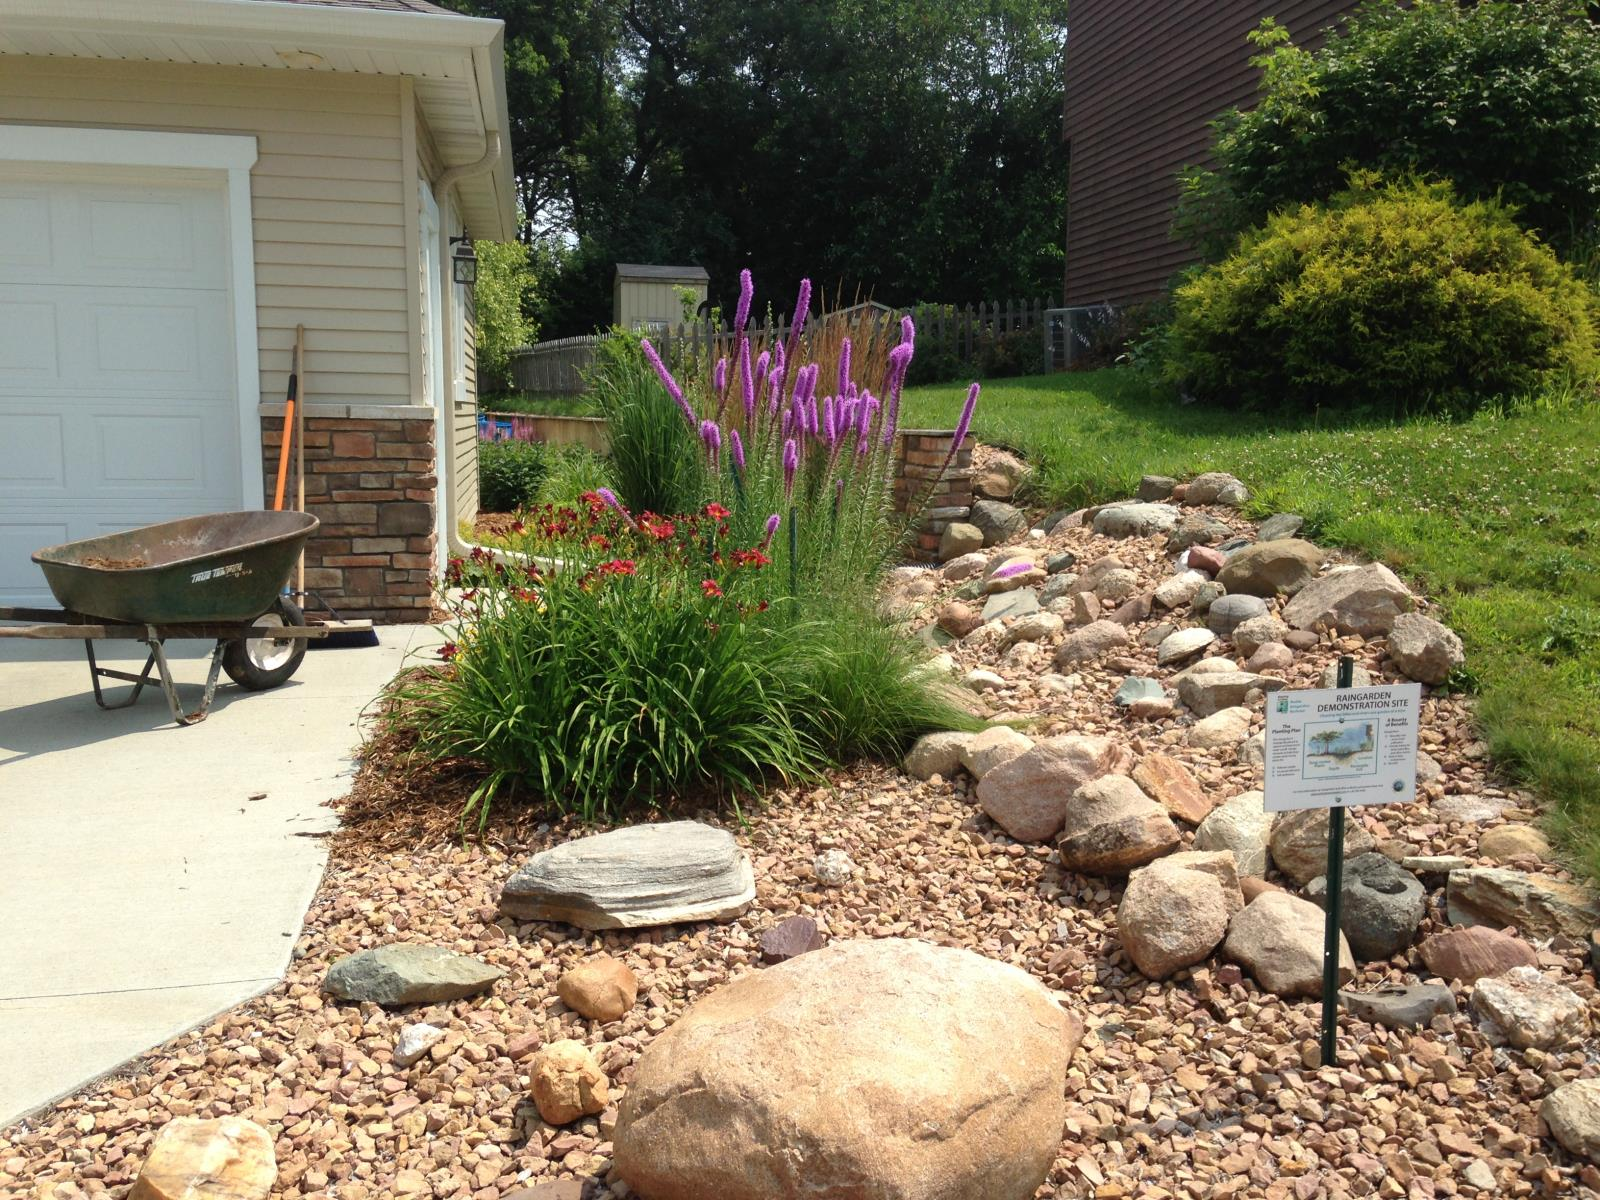 Water running off the neighboring property, as well as water coming off the roof, discharge into this rain garden.